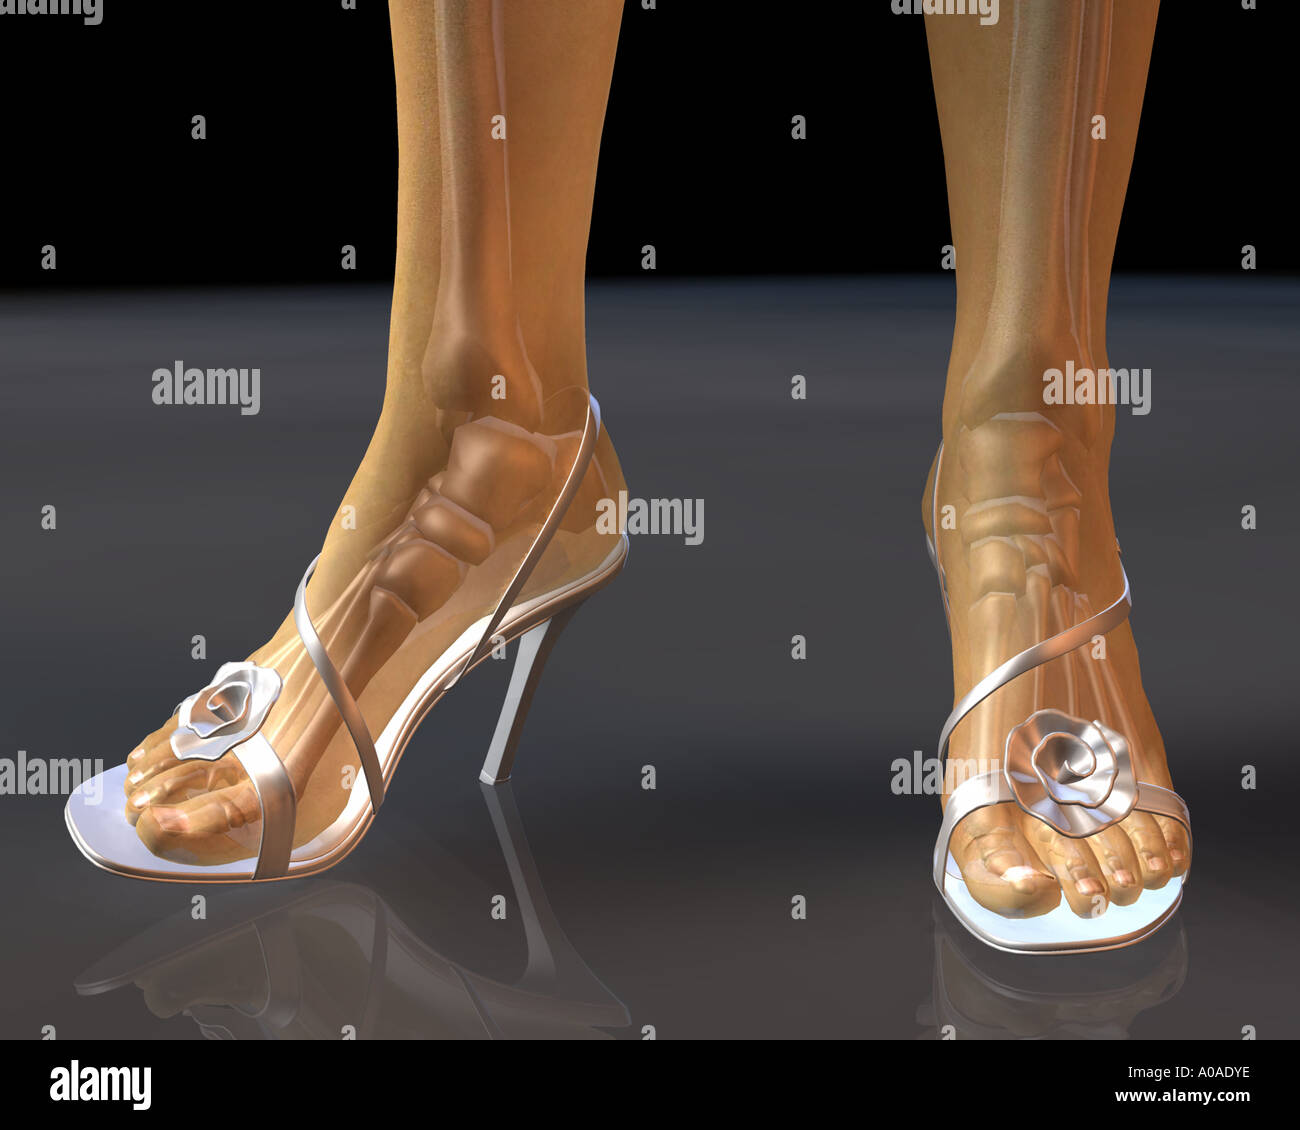 bones in your foot diagram whale shark life cycle illustrative showing female feet and legs high heel shoes stock photo: 5676157 - alamy